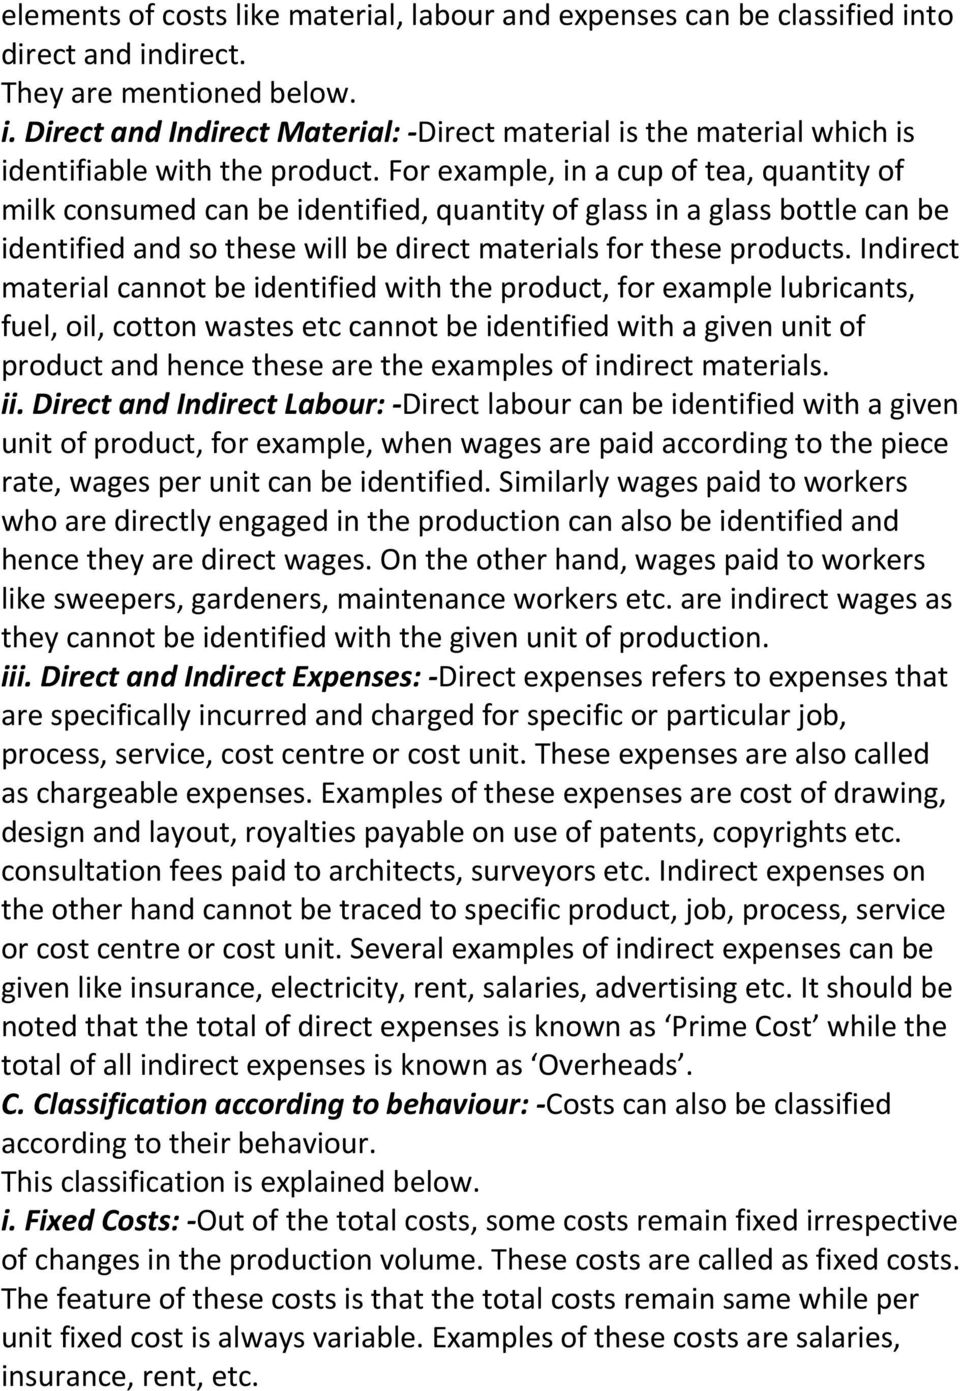 Indirect material cannot be identified with the product, for example lubricants, fuel, oil, cotton wastes etc cannot be identified with a given unit of product and hence these are the examples of